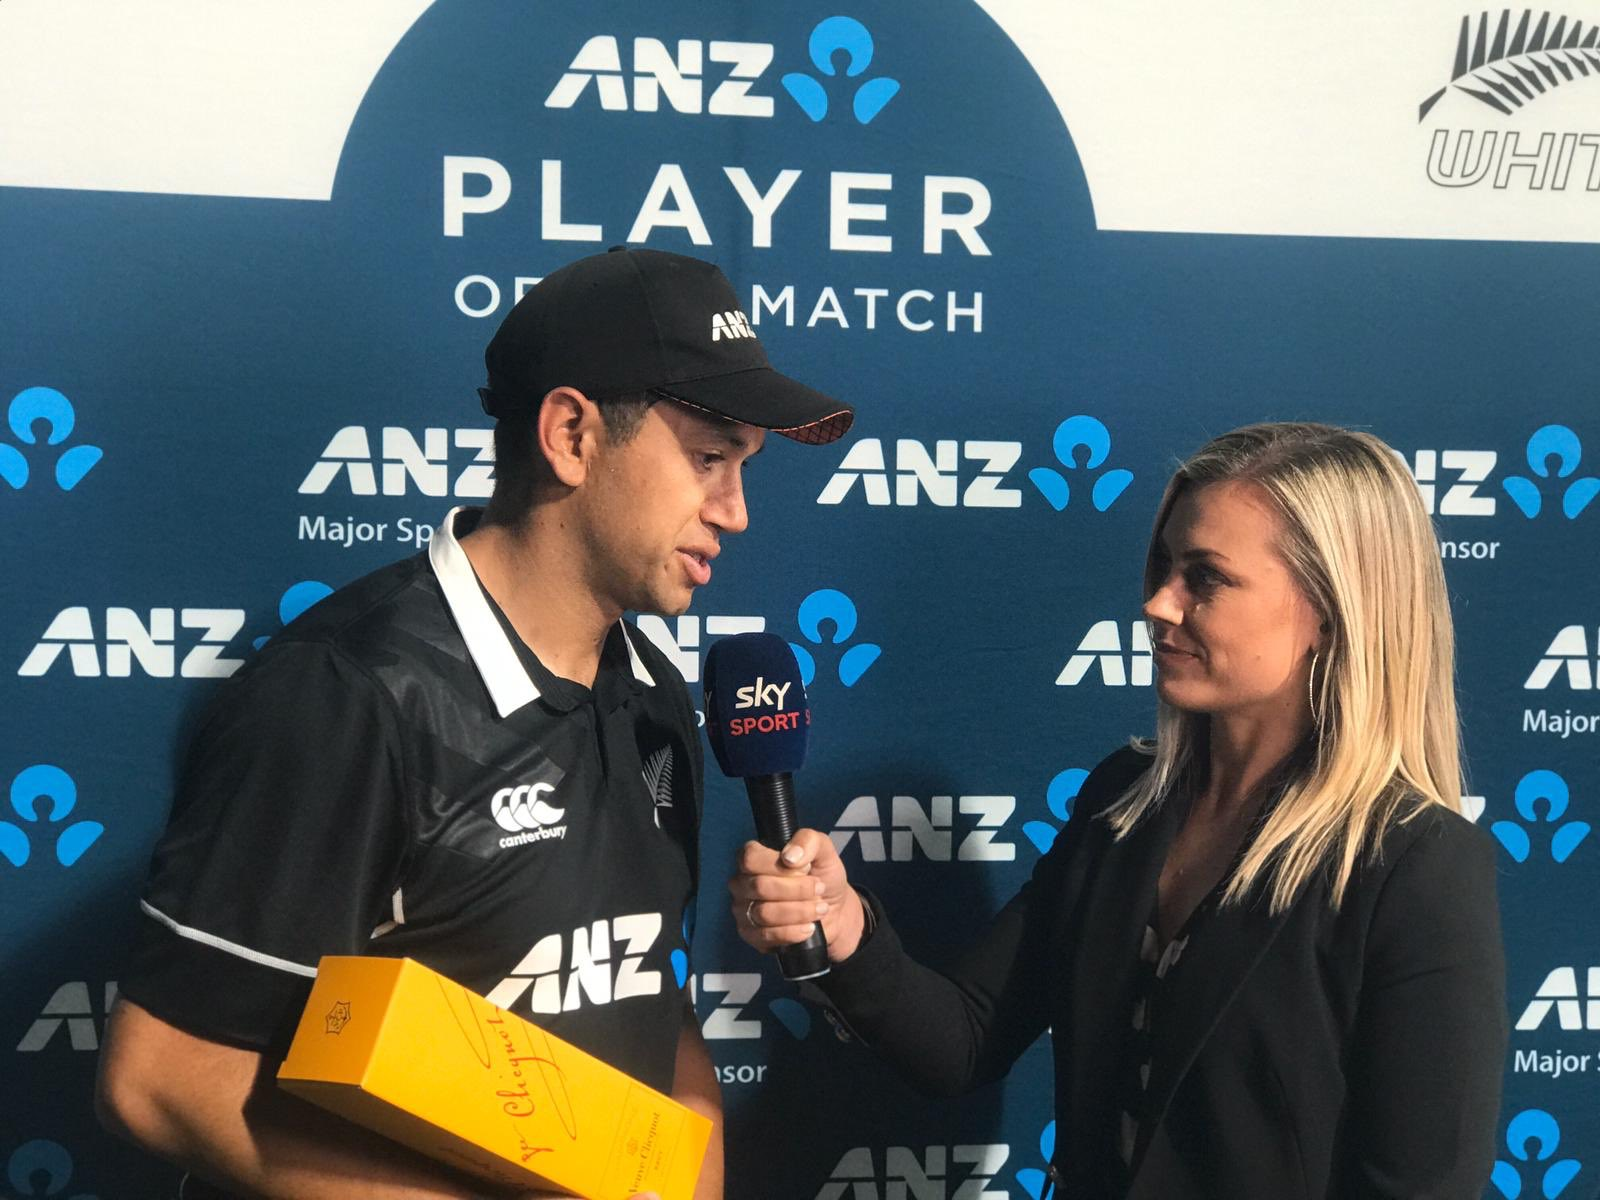 New Zealand vs India 1st ODI Ross Taylor awarded as player of match for 109*